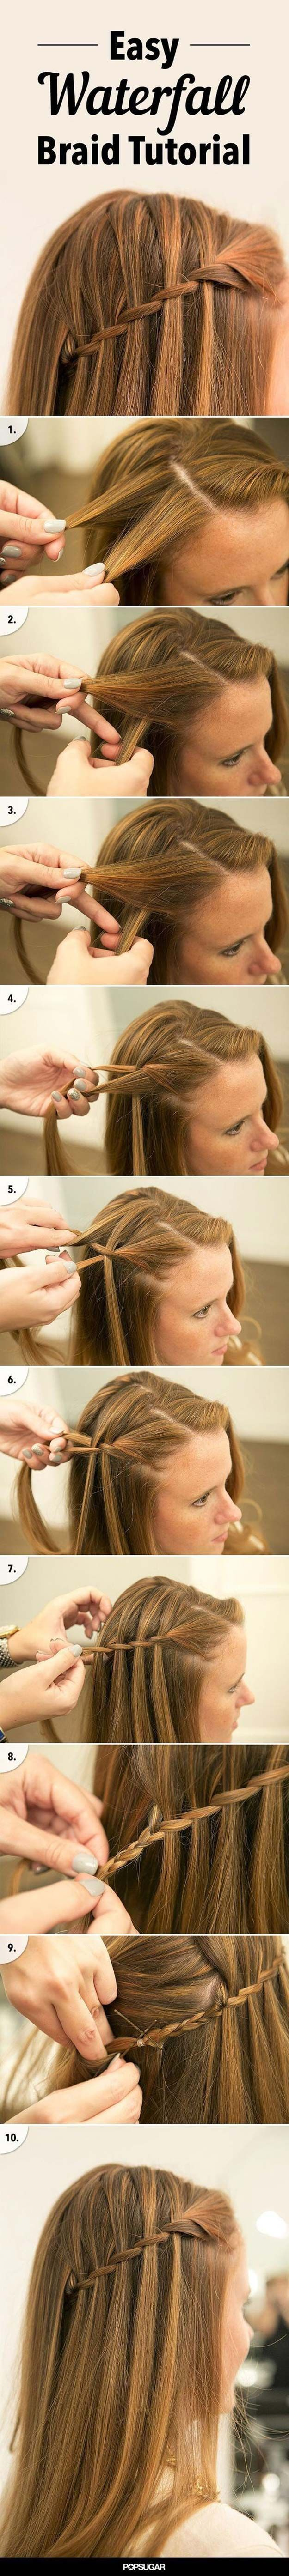 Best Hairstyles for Long Hair - Waterfall Braid Tutorial- Step by Step Tutorials for Easy Curls, Updo, Half Up, Braids and Lazy Girl Looks. Prom Ideas, Special Occasion Hair and Braiding Instructions for Teens, Teenagers and Adults, Women and Girls diyprojectsfortee...